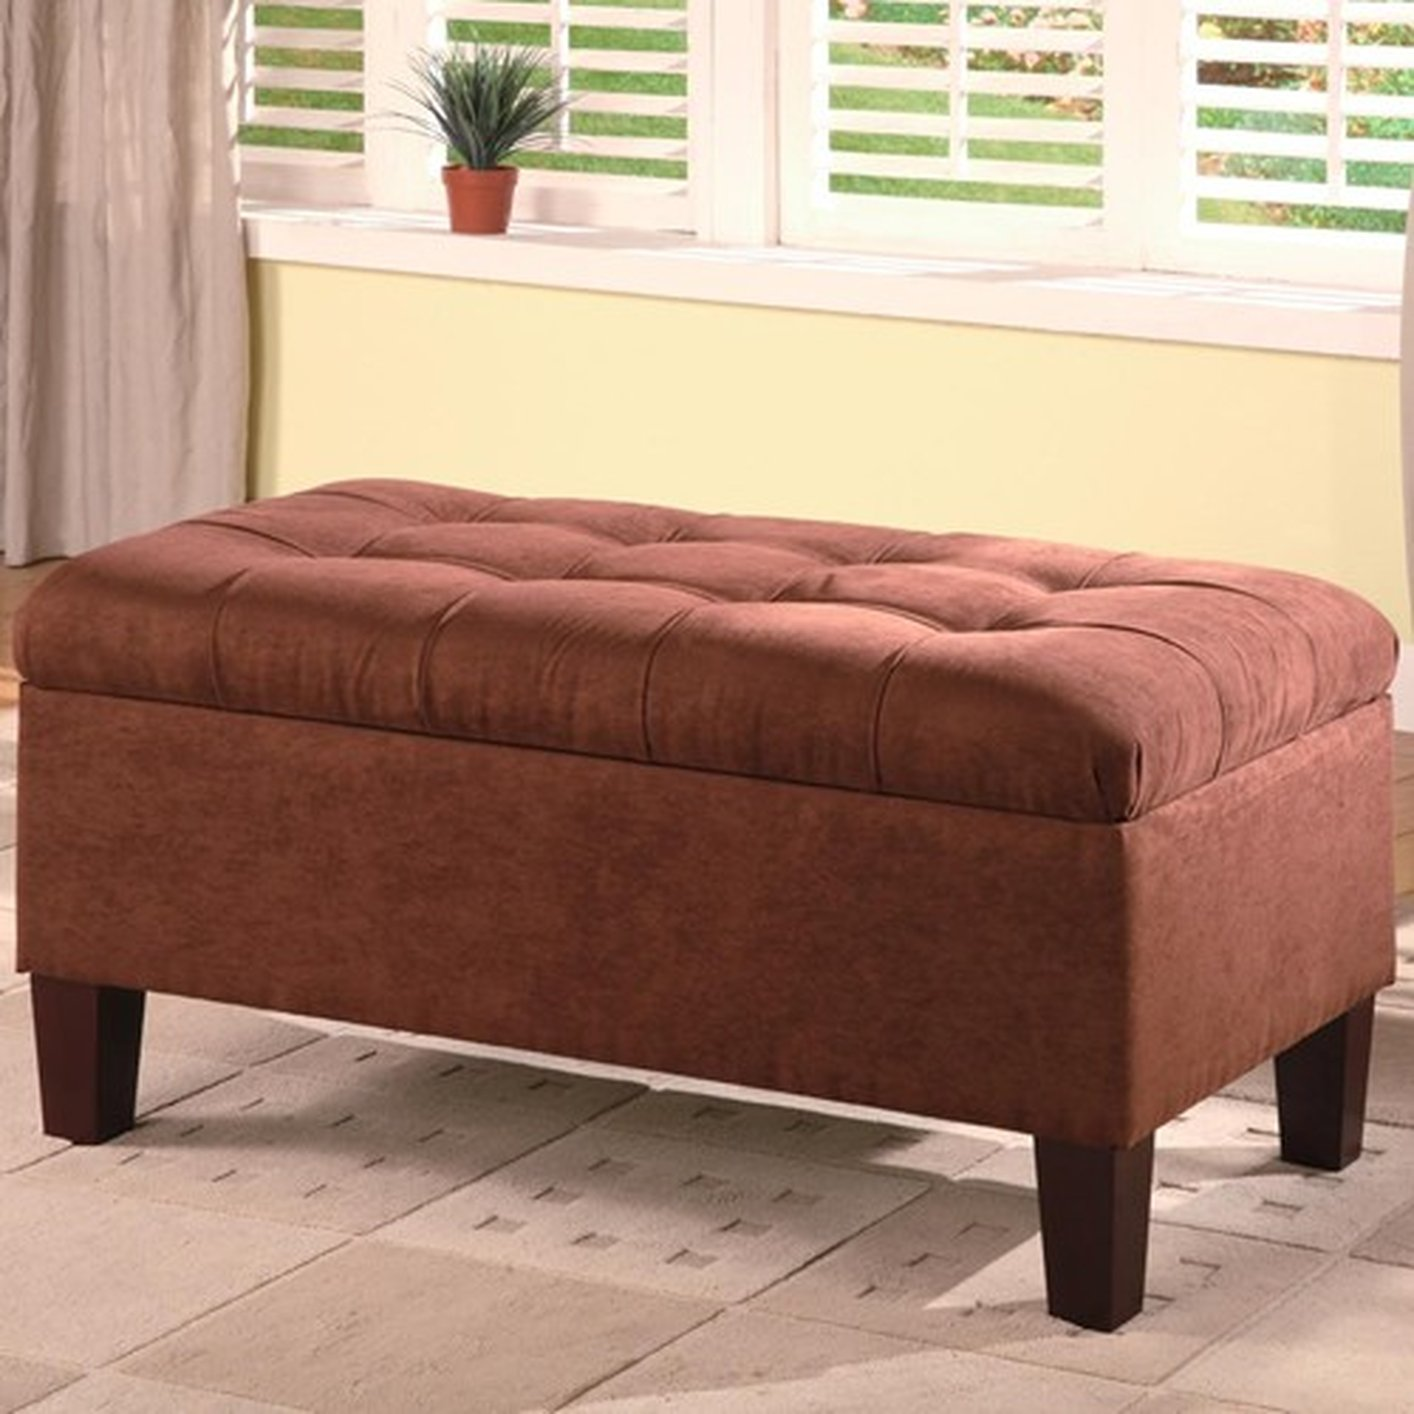 Brown Fabric Ottoman - Coaster 501040 Brown Fabric Ottoman - Steal-A-Sofa Furniture